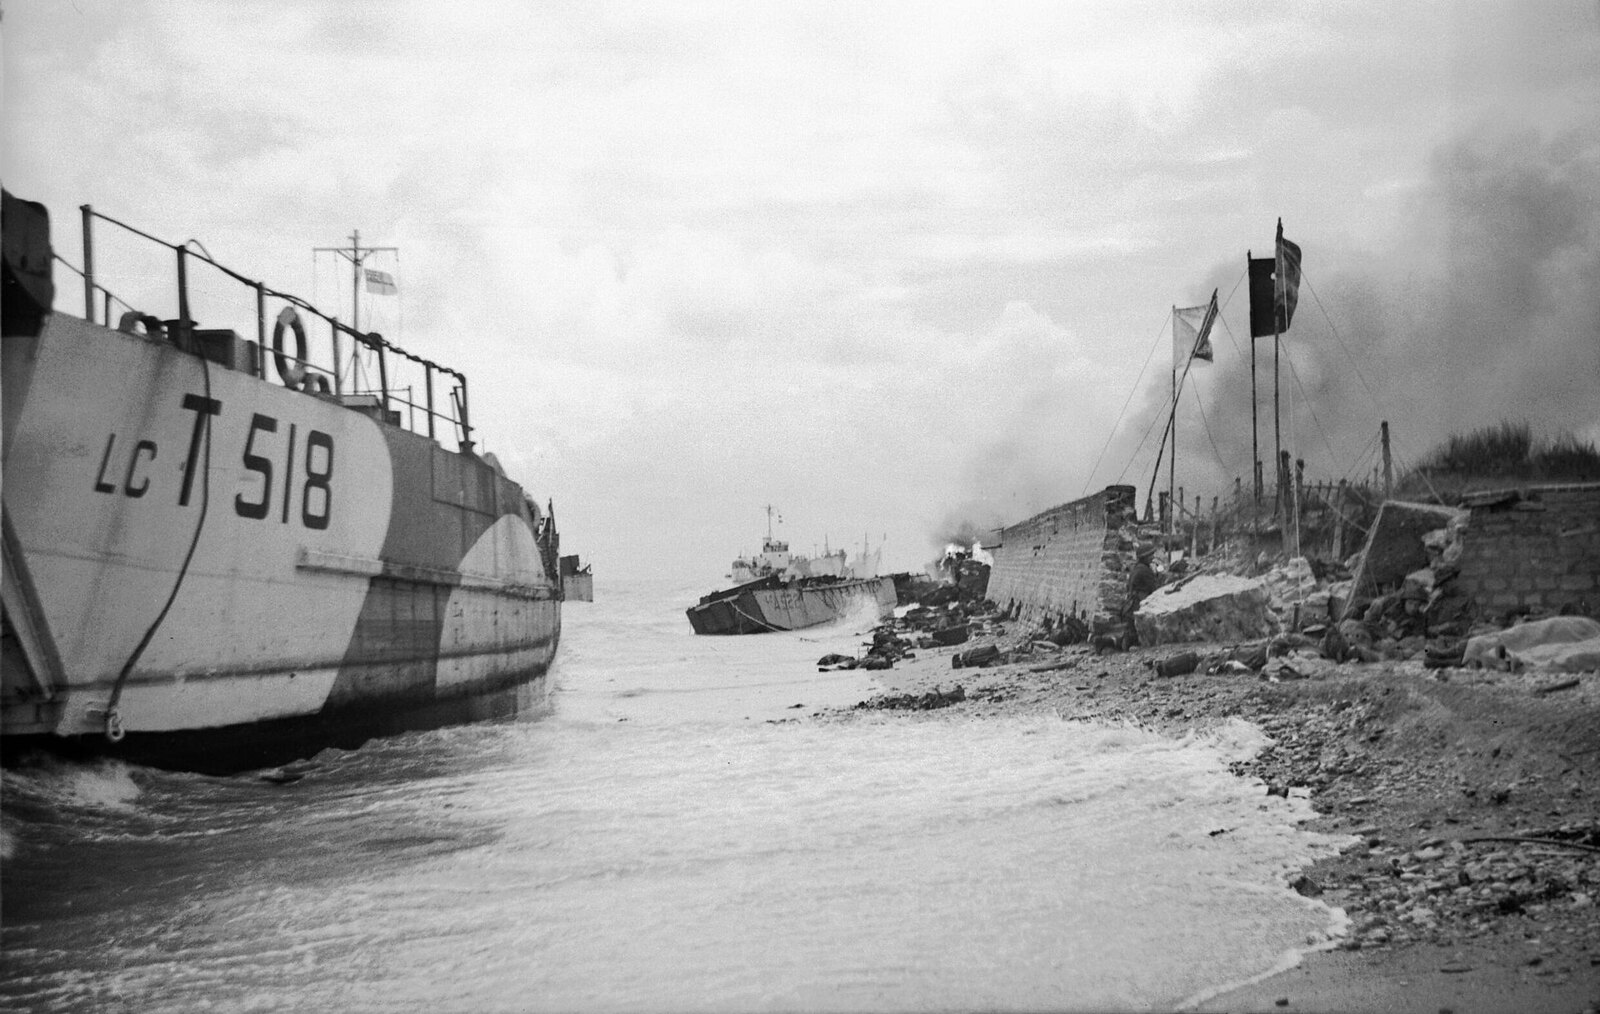 Wrecked landing craft on Nan Red beach, Juno area, at St Aubin-sur-Mer, 6 June 1944.